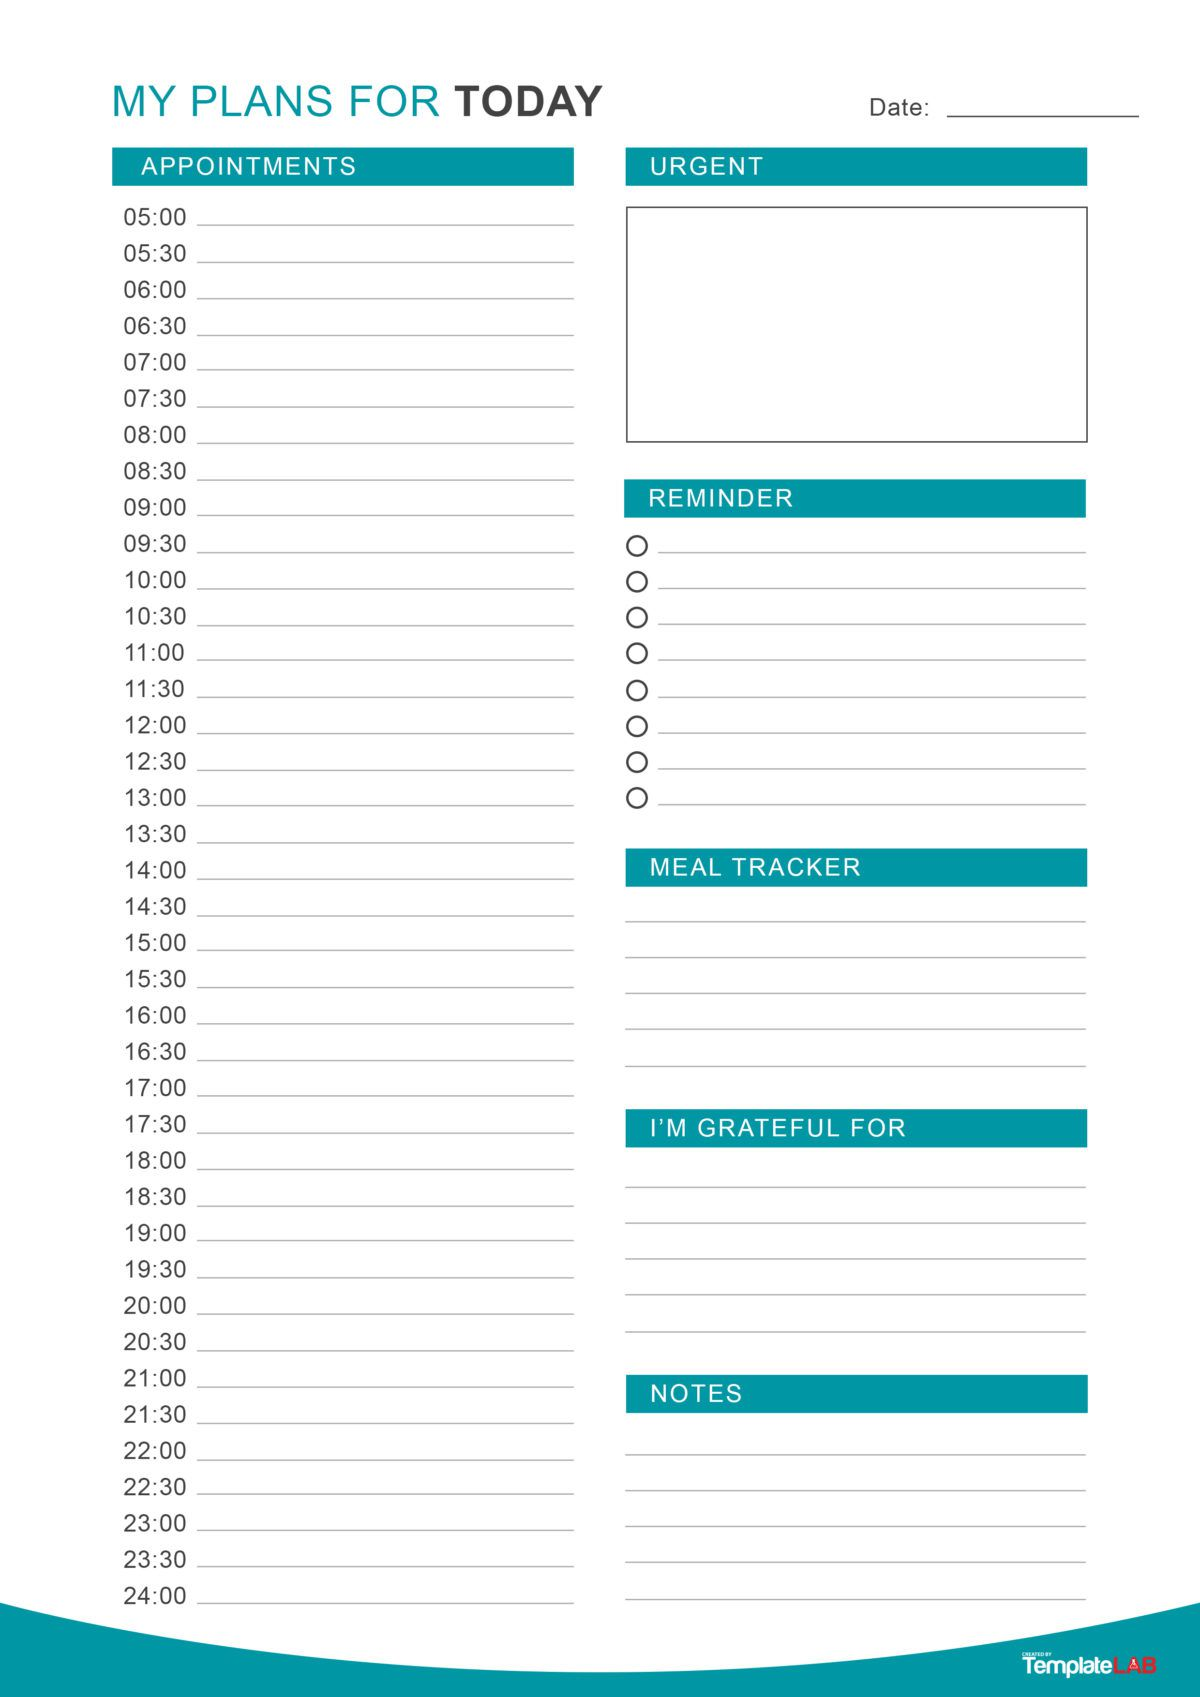 005 Surprising Printable Daily Schedule Template Inspiration Full